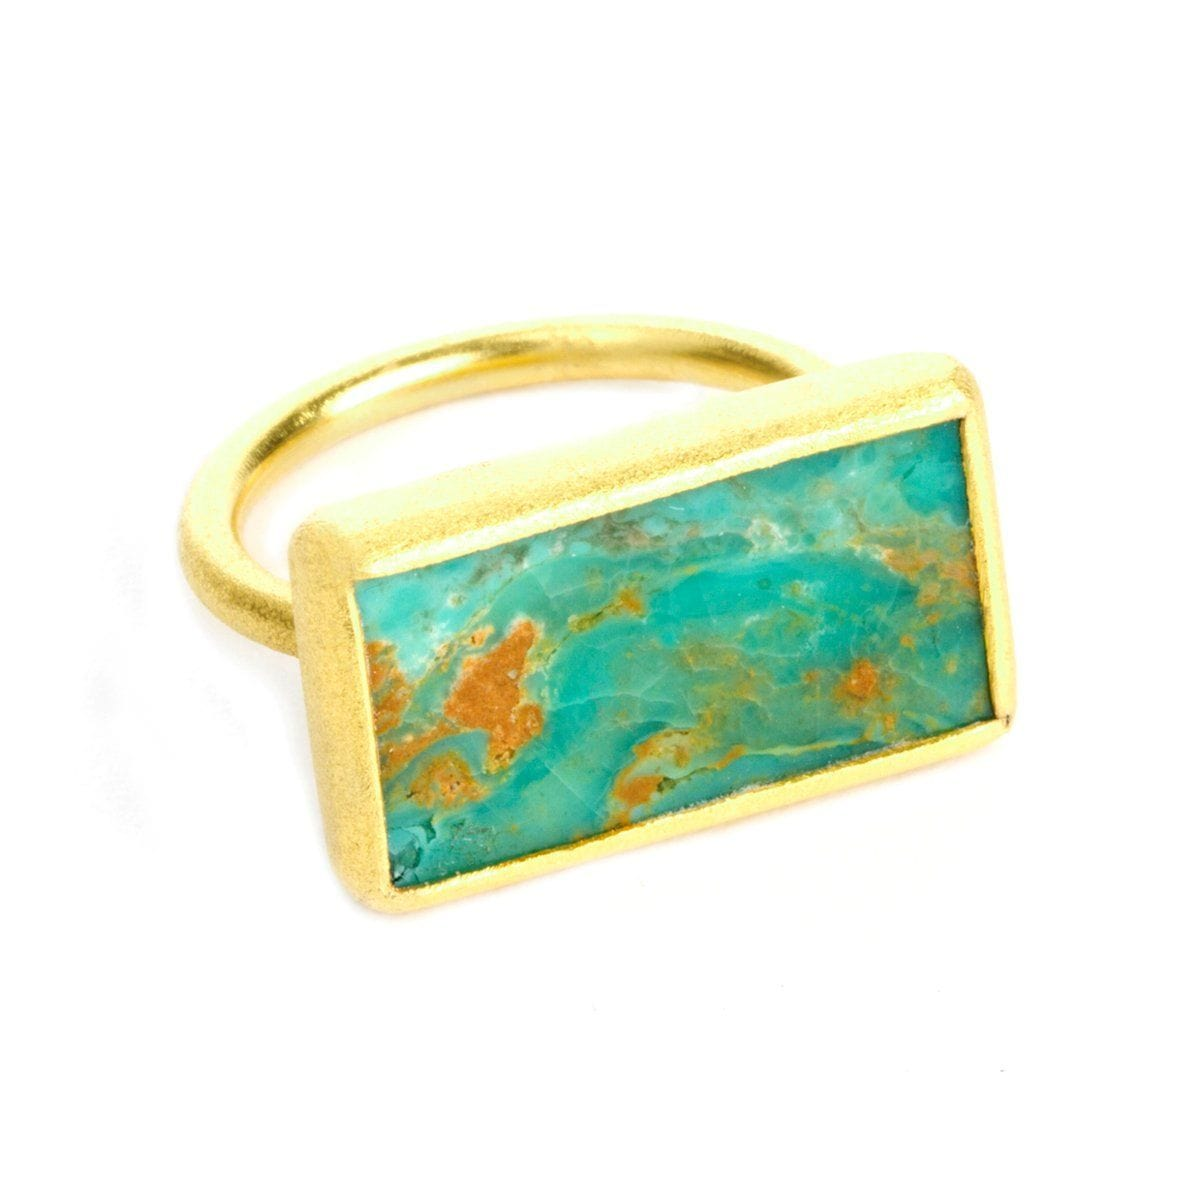 Nirvana 22k Gold Plated Turquoise Ring - G7012R